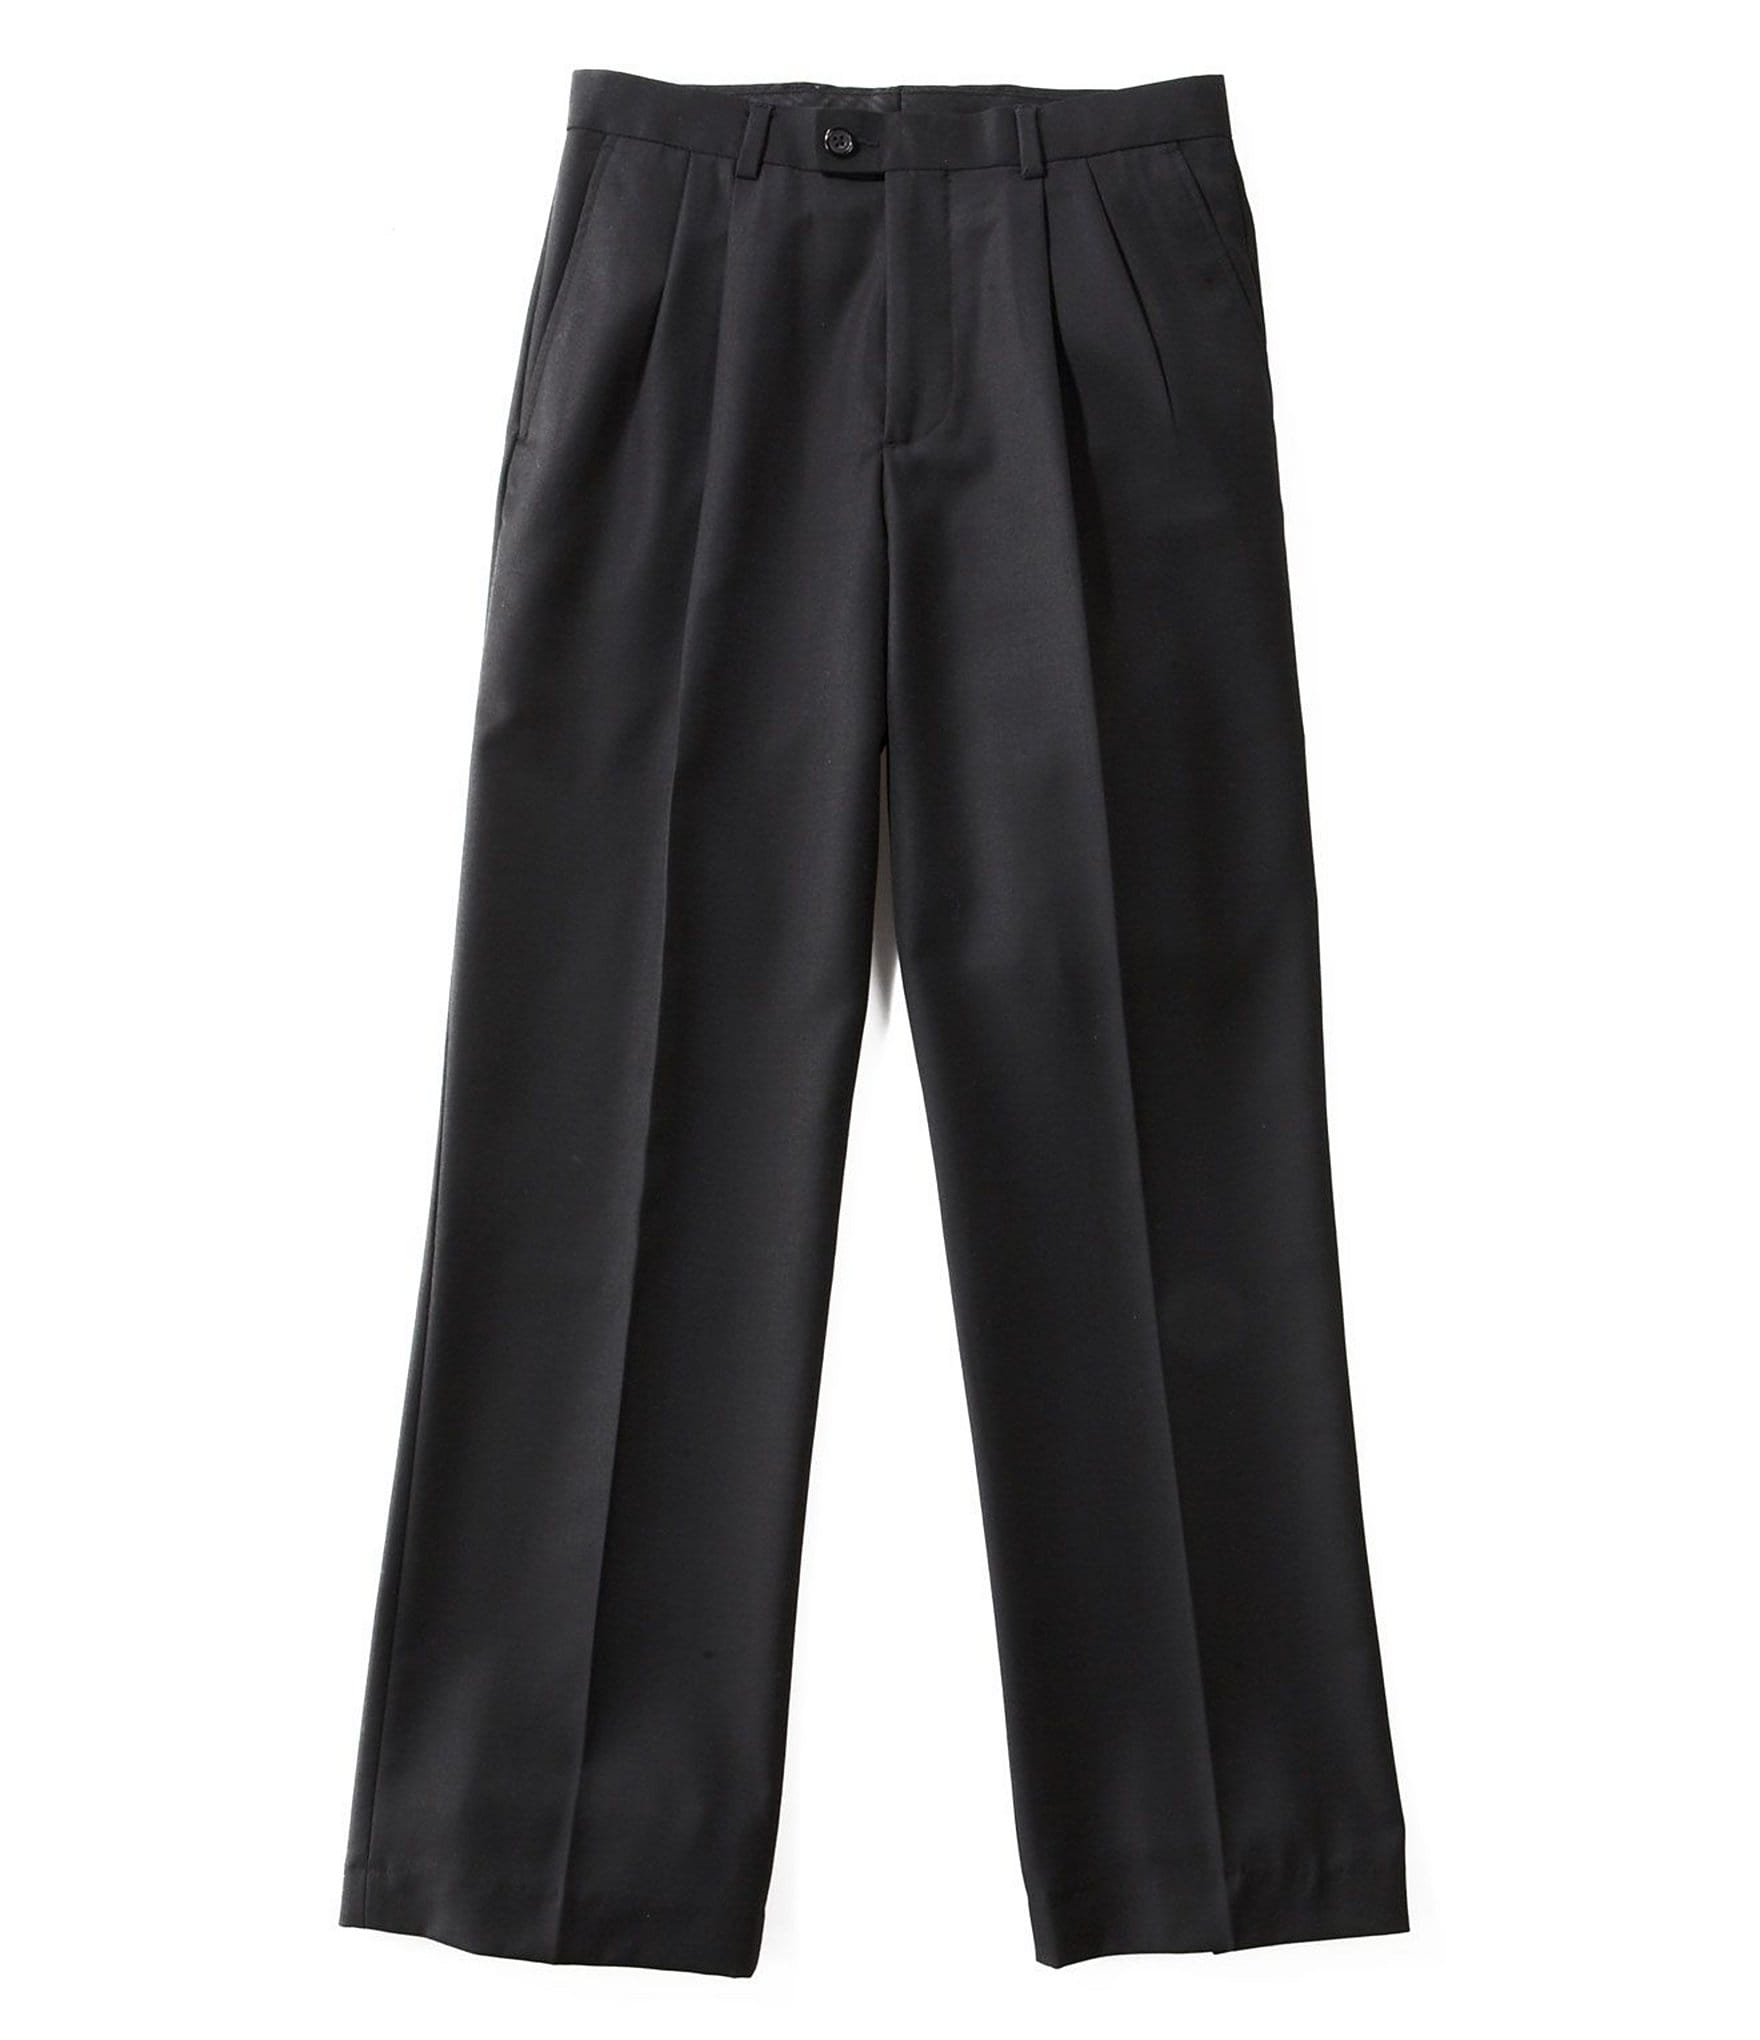 Product - Vittorino Big Boys' Husky Flat Front Slim Fit Dress Pants (Sizes 10H - 20H) Product Image. Product Title. Vittorino Big Boys' Husky Flat Front Slim Fit Dress Pants (Sizes 10H - 20H) Price $ Items sold by exeezipcoolgetsiu9tq.cf that are marked eligible on .